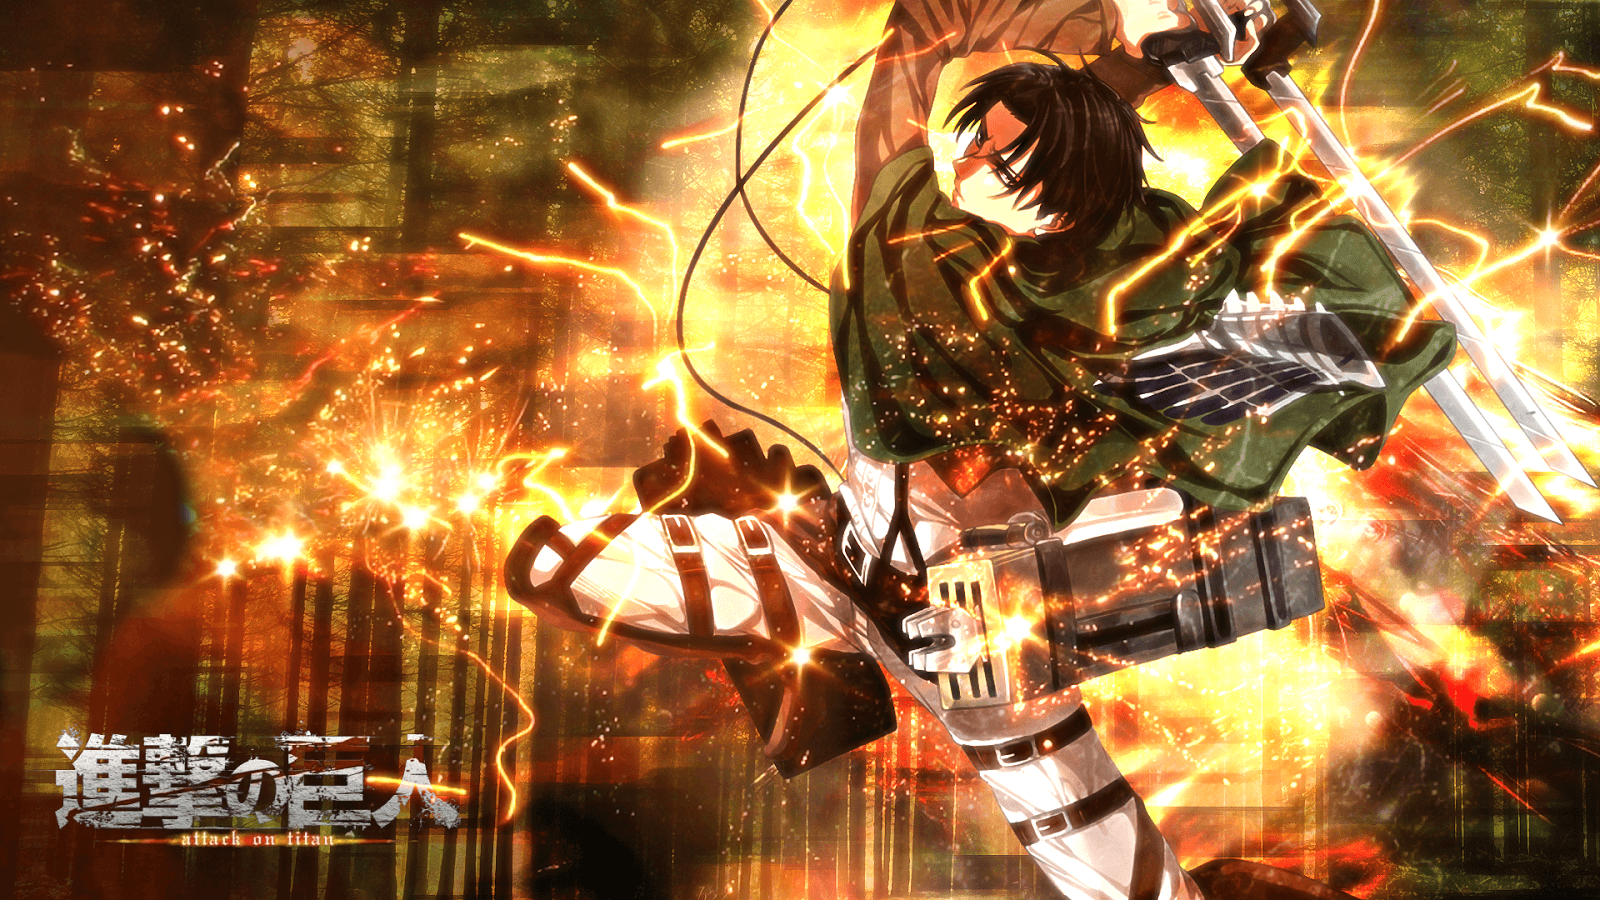 Do you want attack on titan wallpapers? Attack On Titan Anime 4k PC Wallpapers - Wallpaper Cave